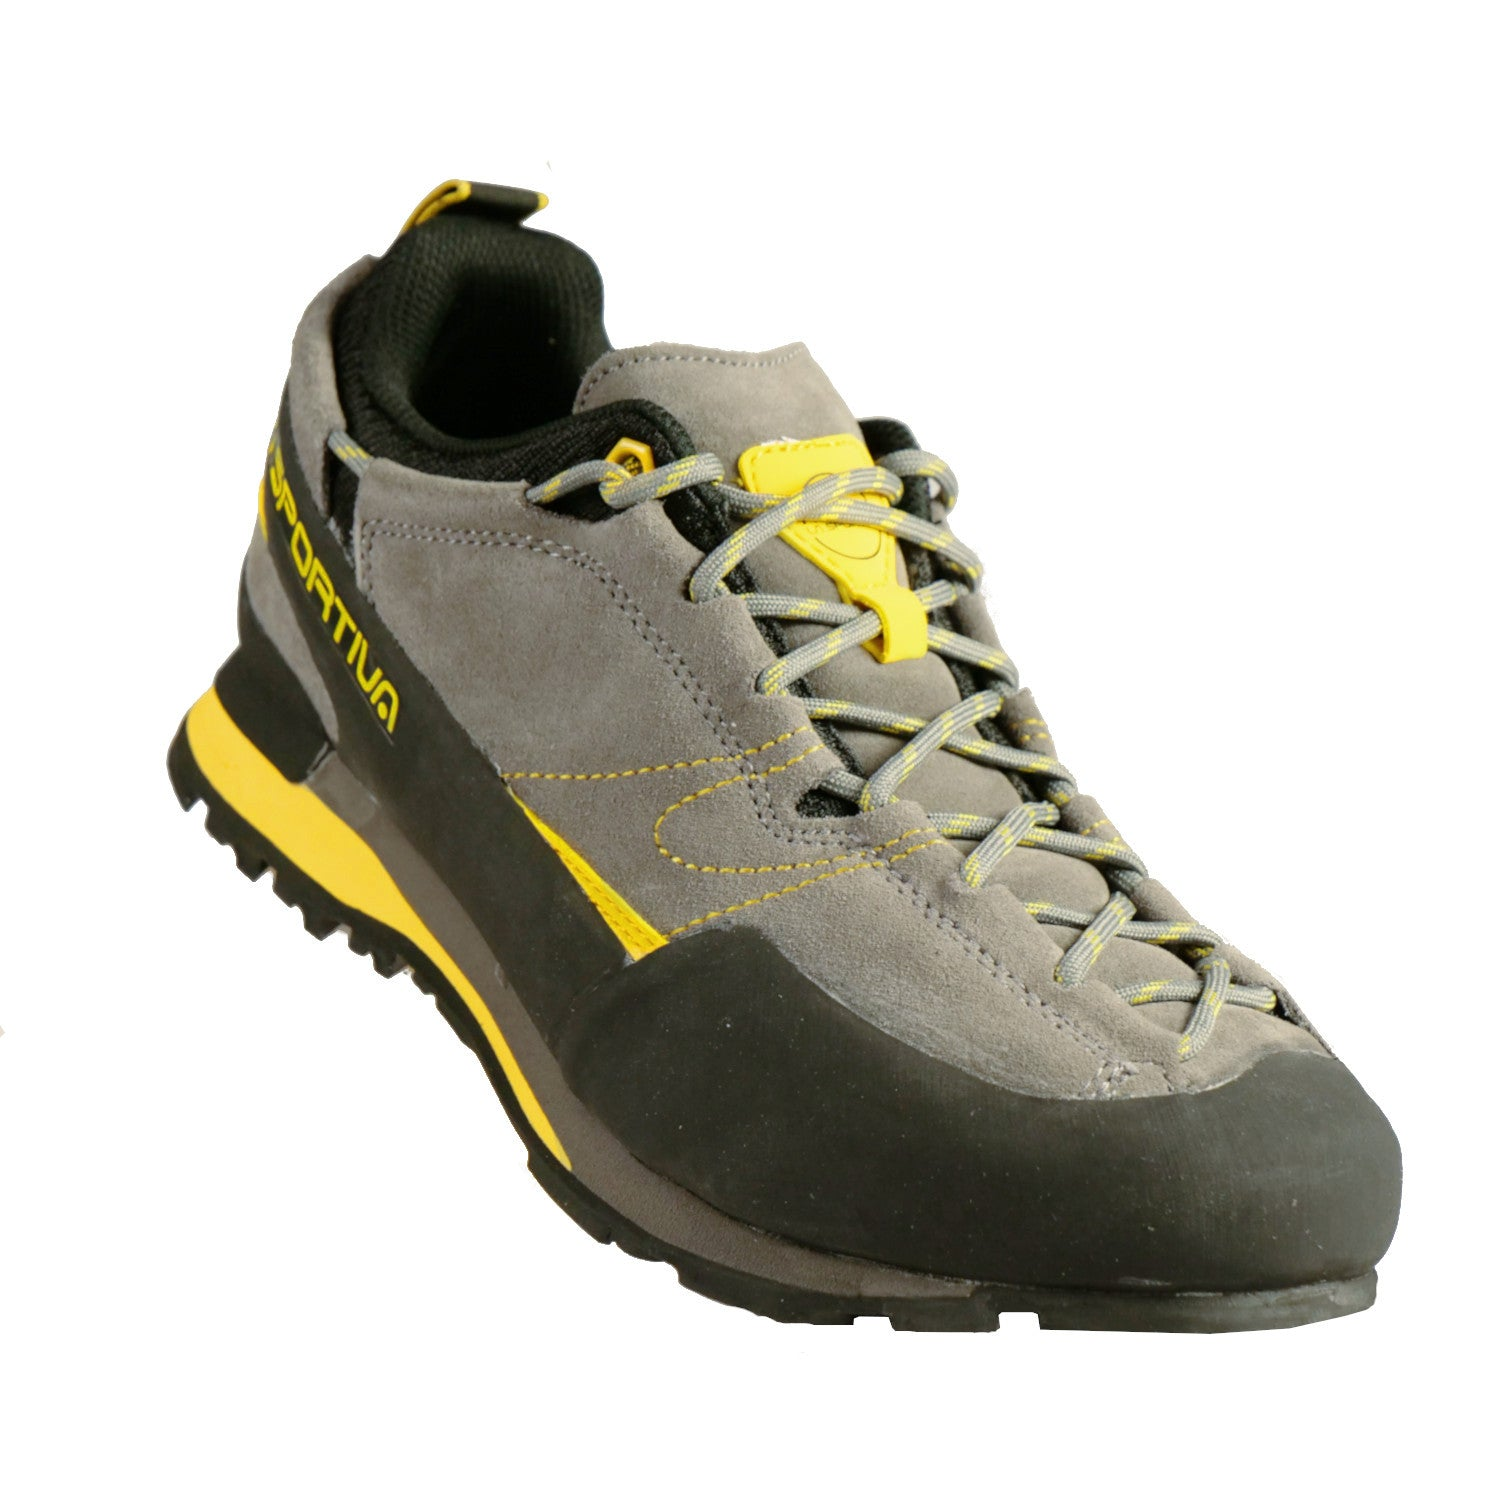 La Sportiva Boulder X approach shoe, outer side/front view, in black, grey and yellow colours